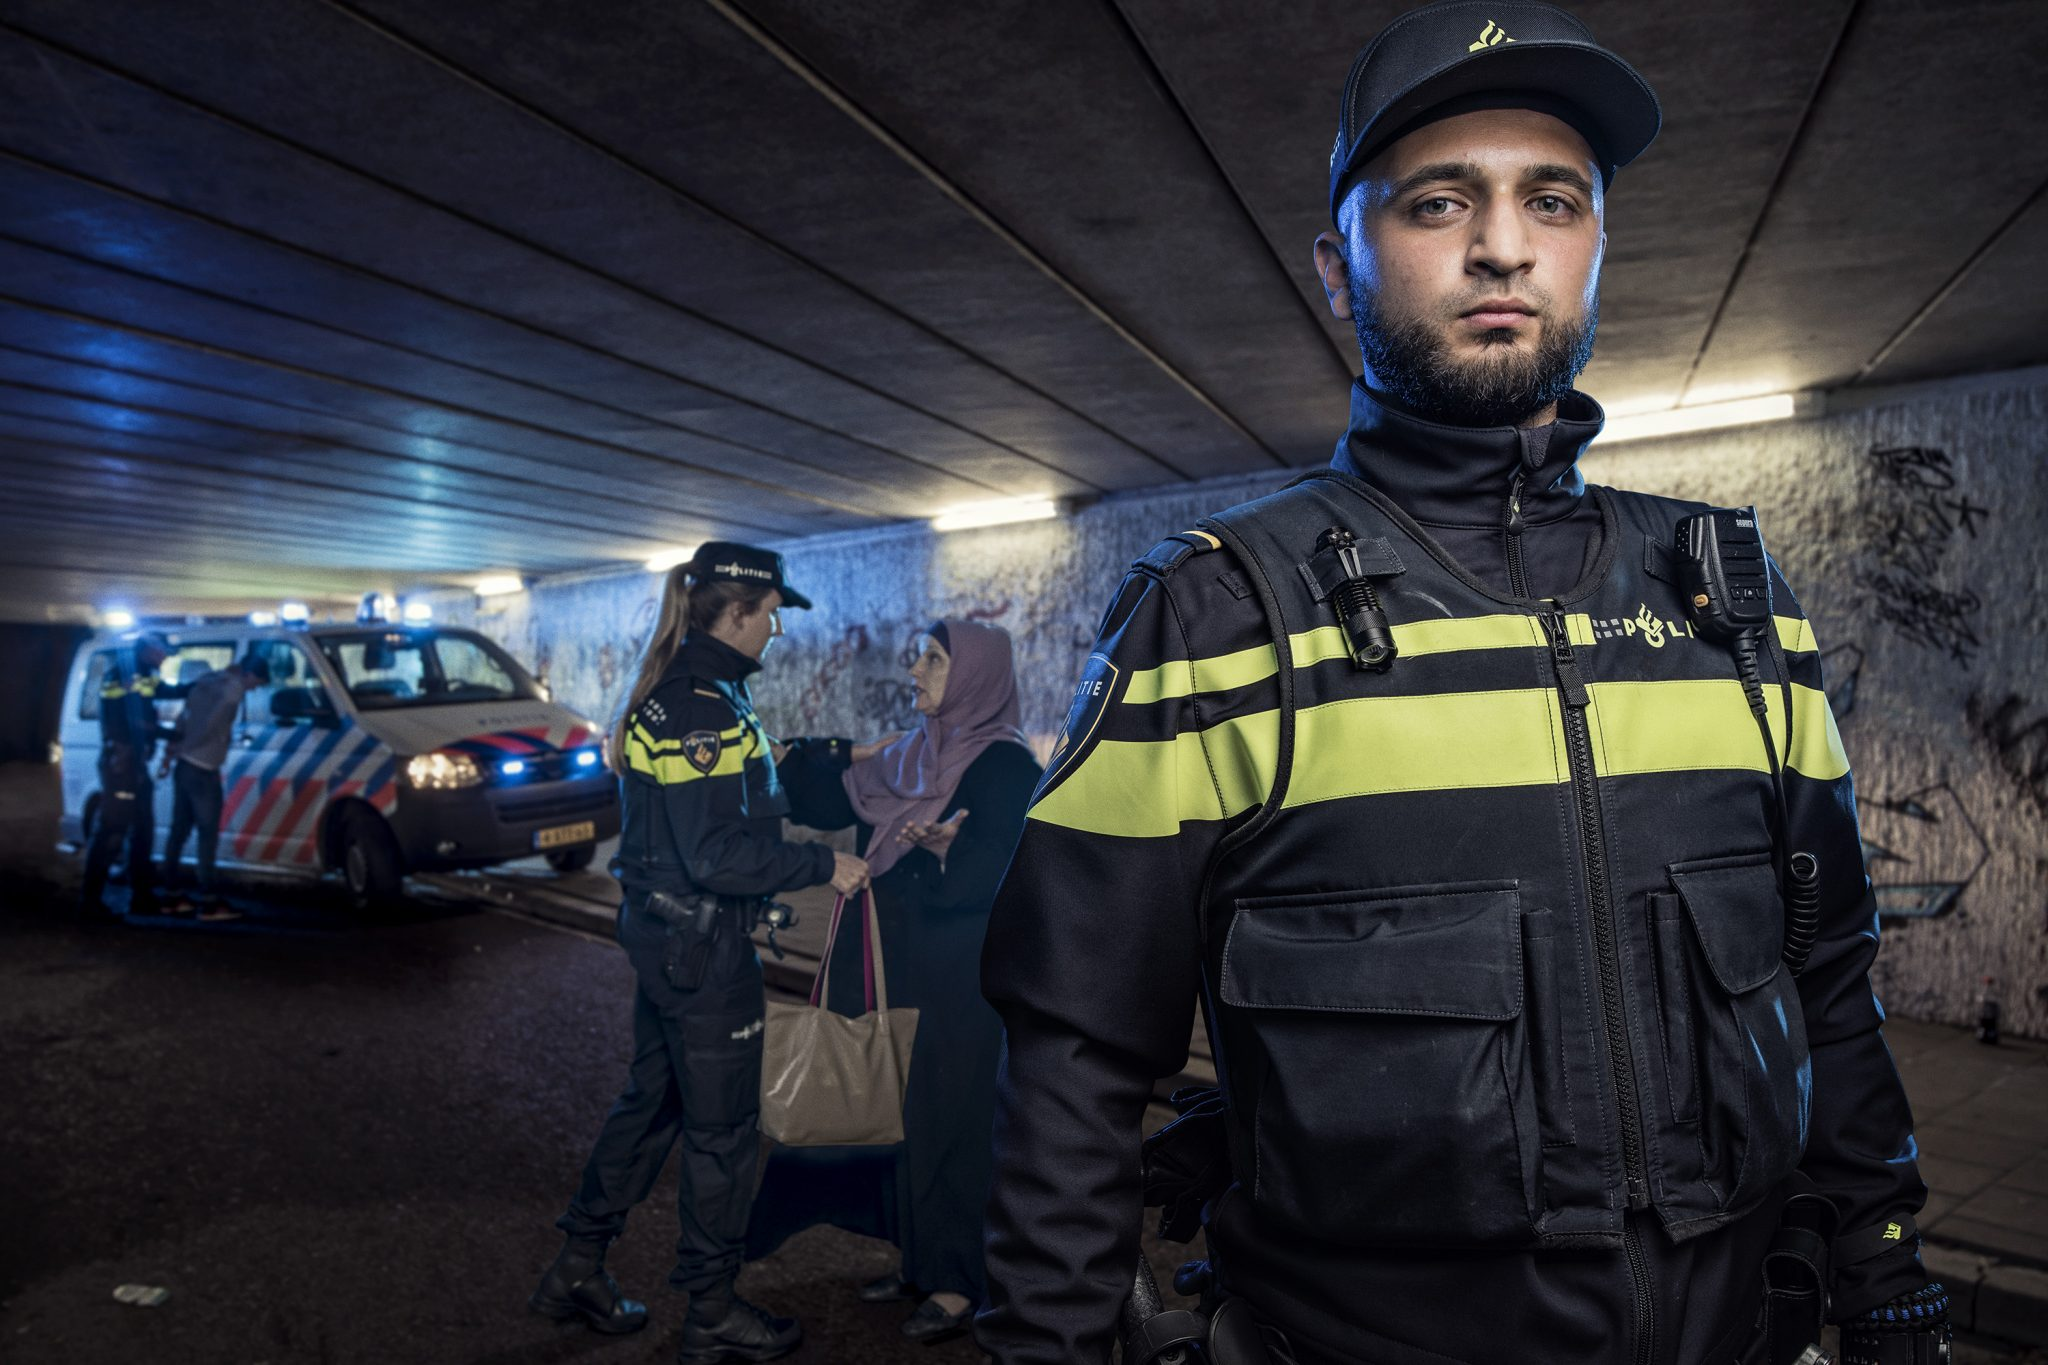 politie-overval1-3